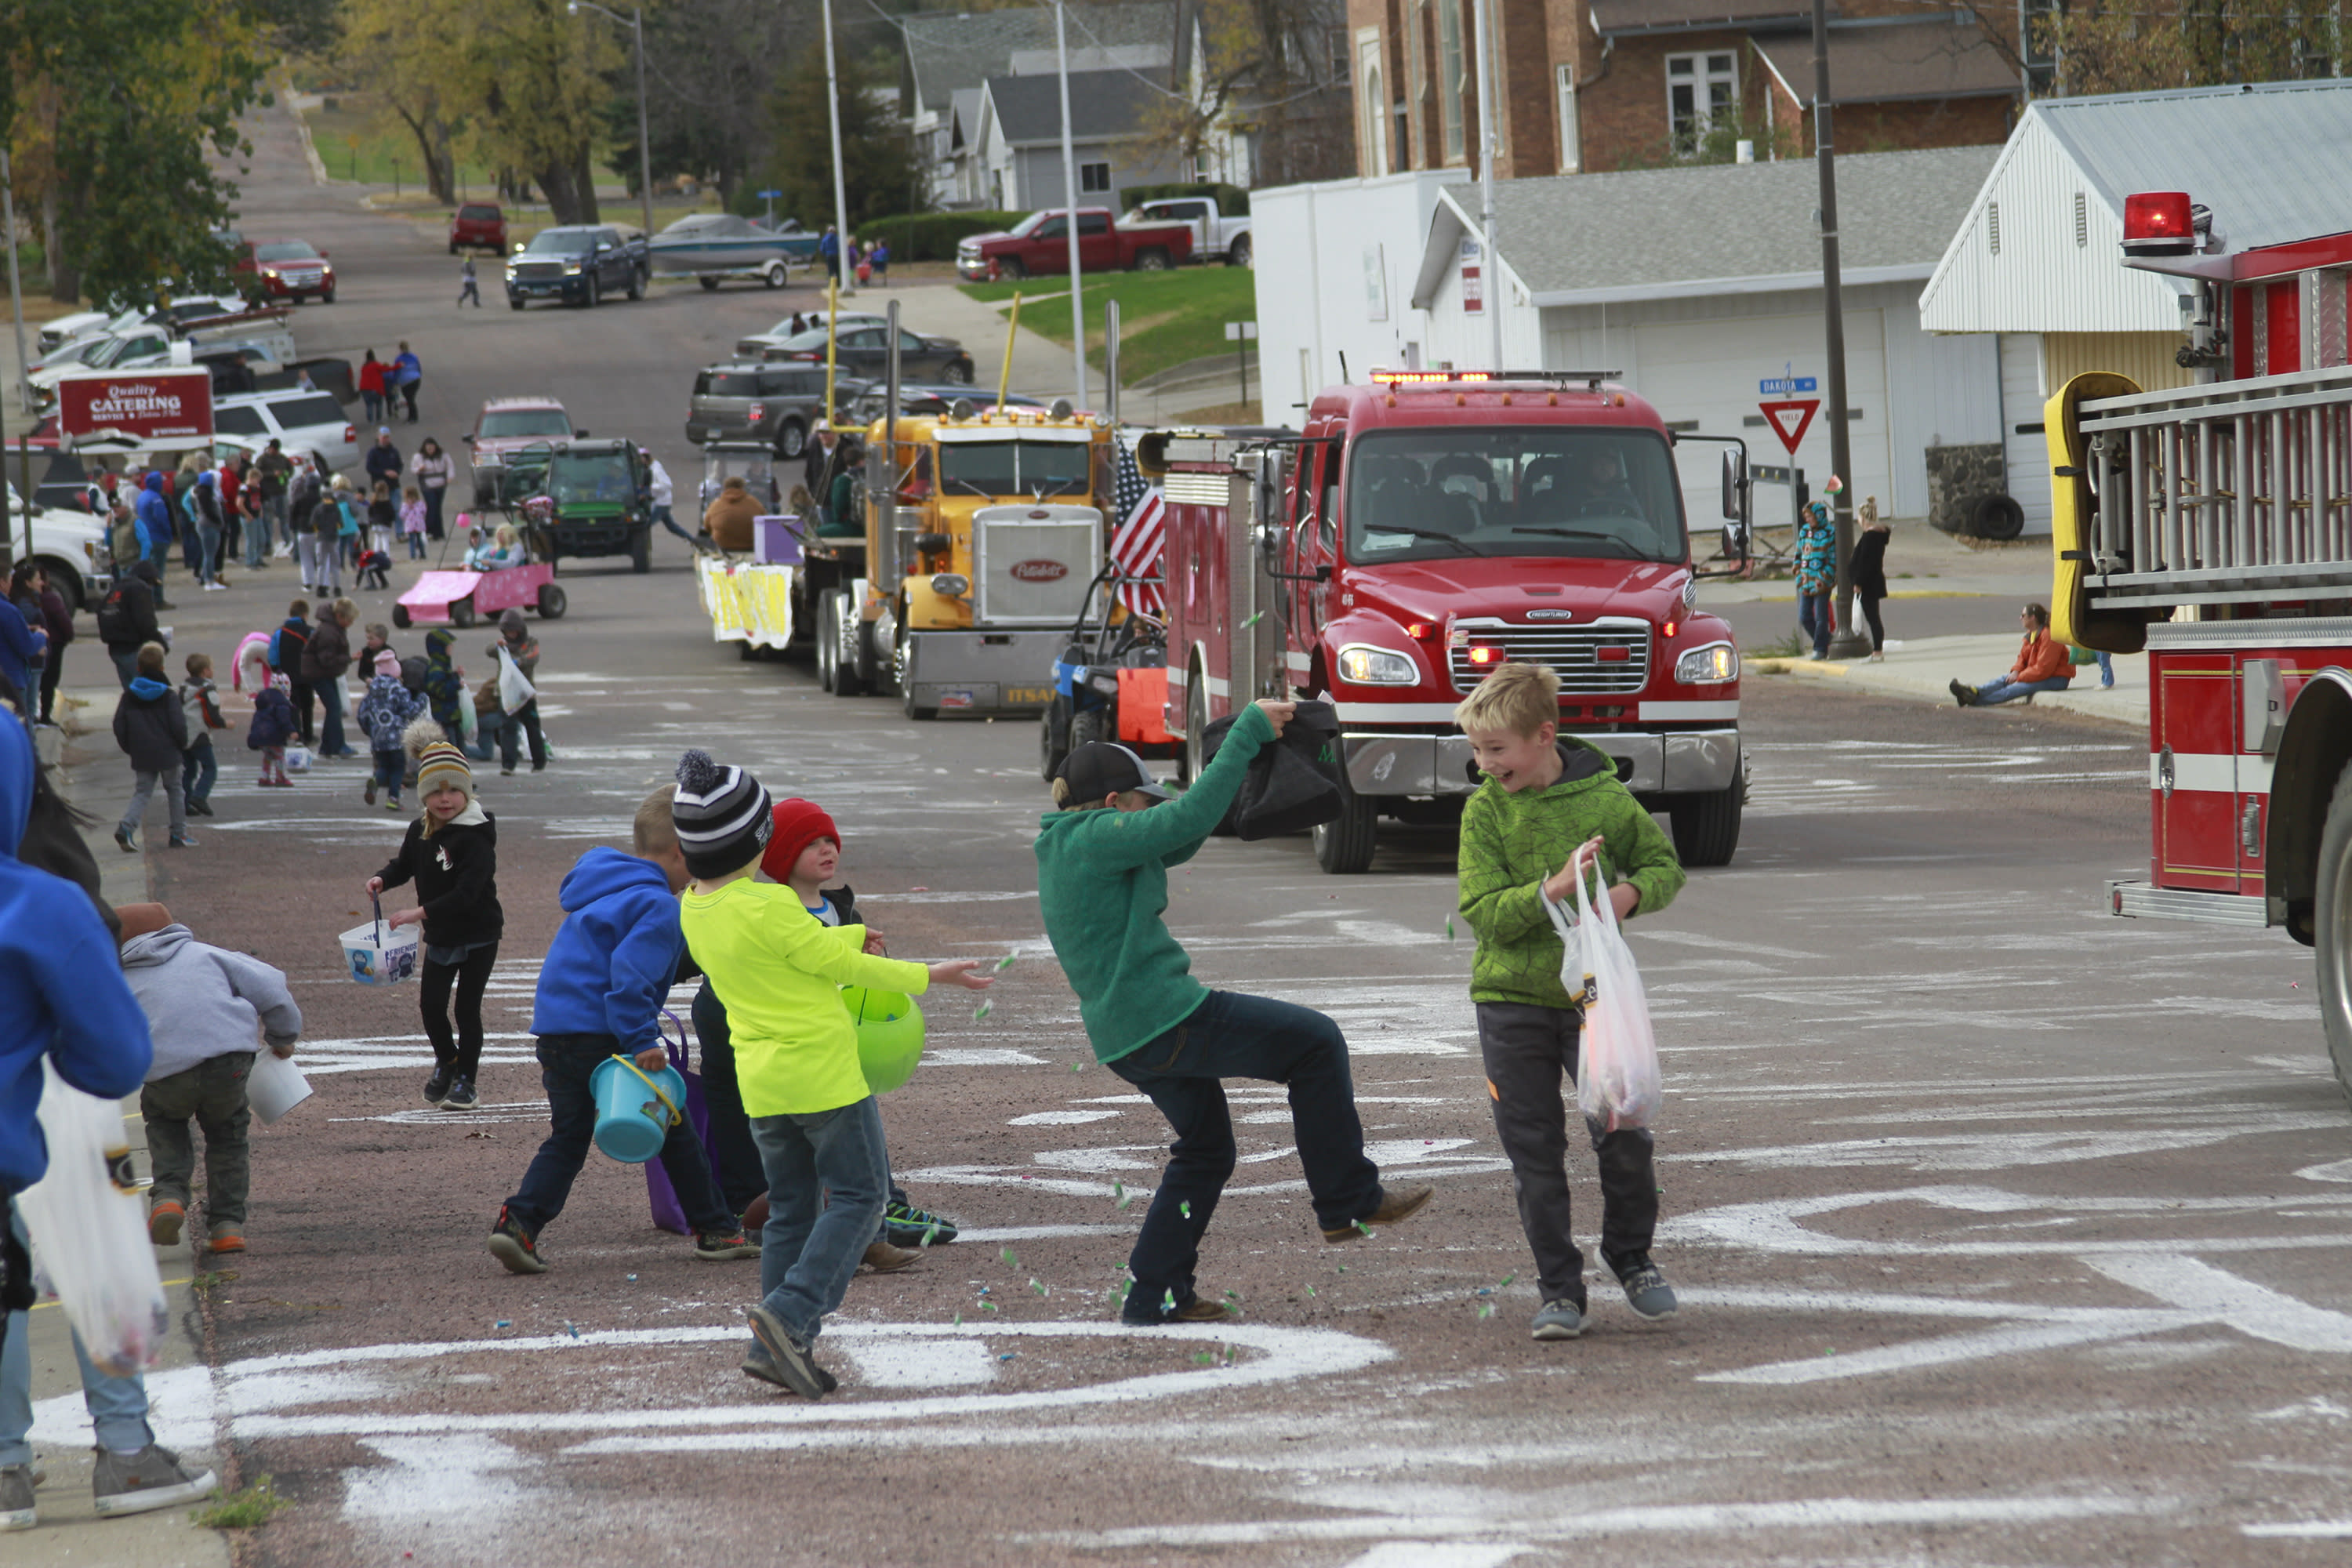 Children scramble for candy during a homecoming parade on Friday Oct. 16, 2020, in Wessington Springs, S.D. The parade had to be postponed due to a coronavirus outbreak that killed five residents of the local nursing home. (AP Photo/Stephen Groves)